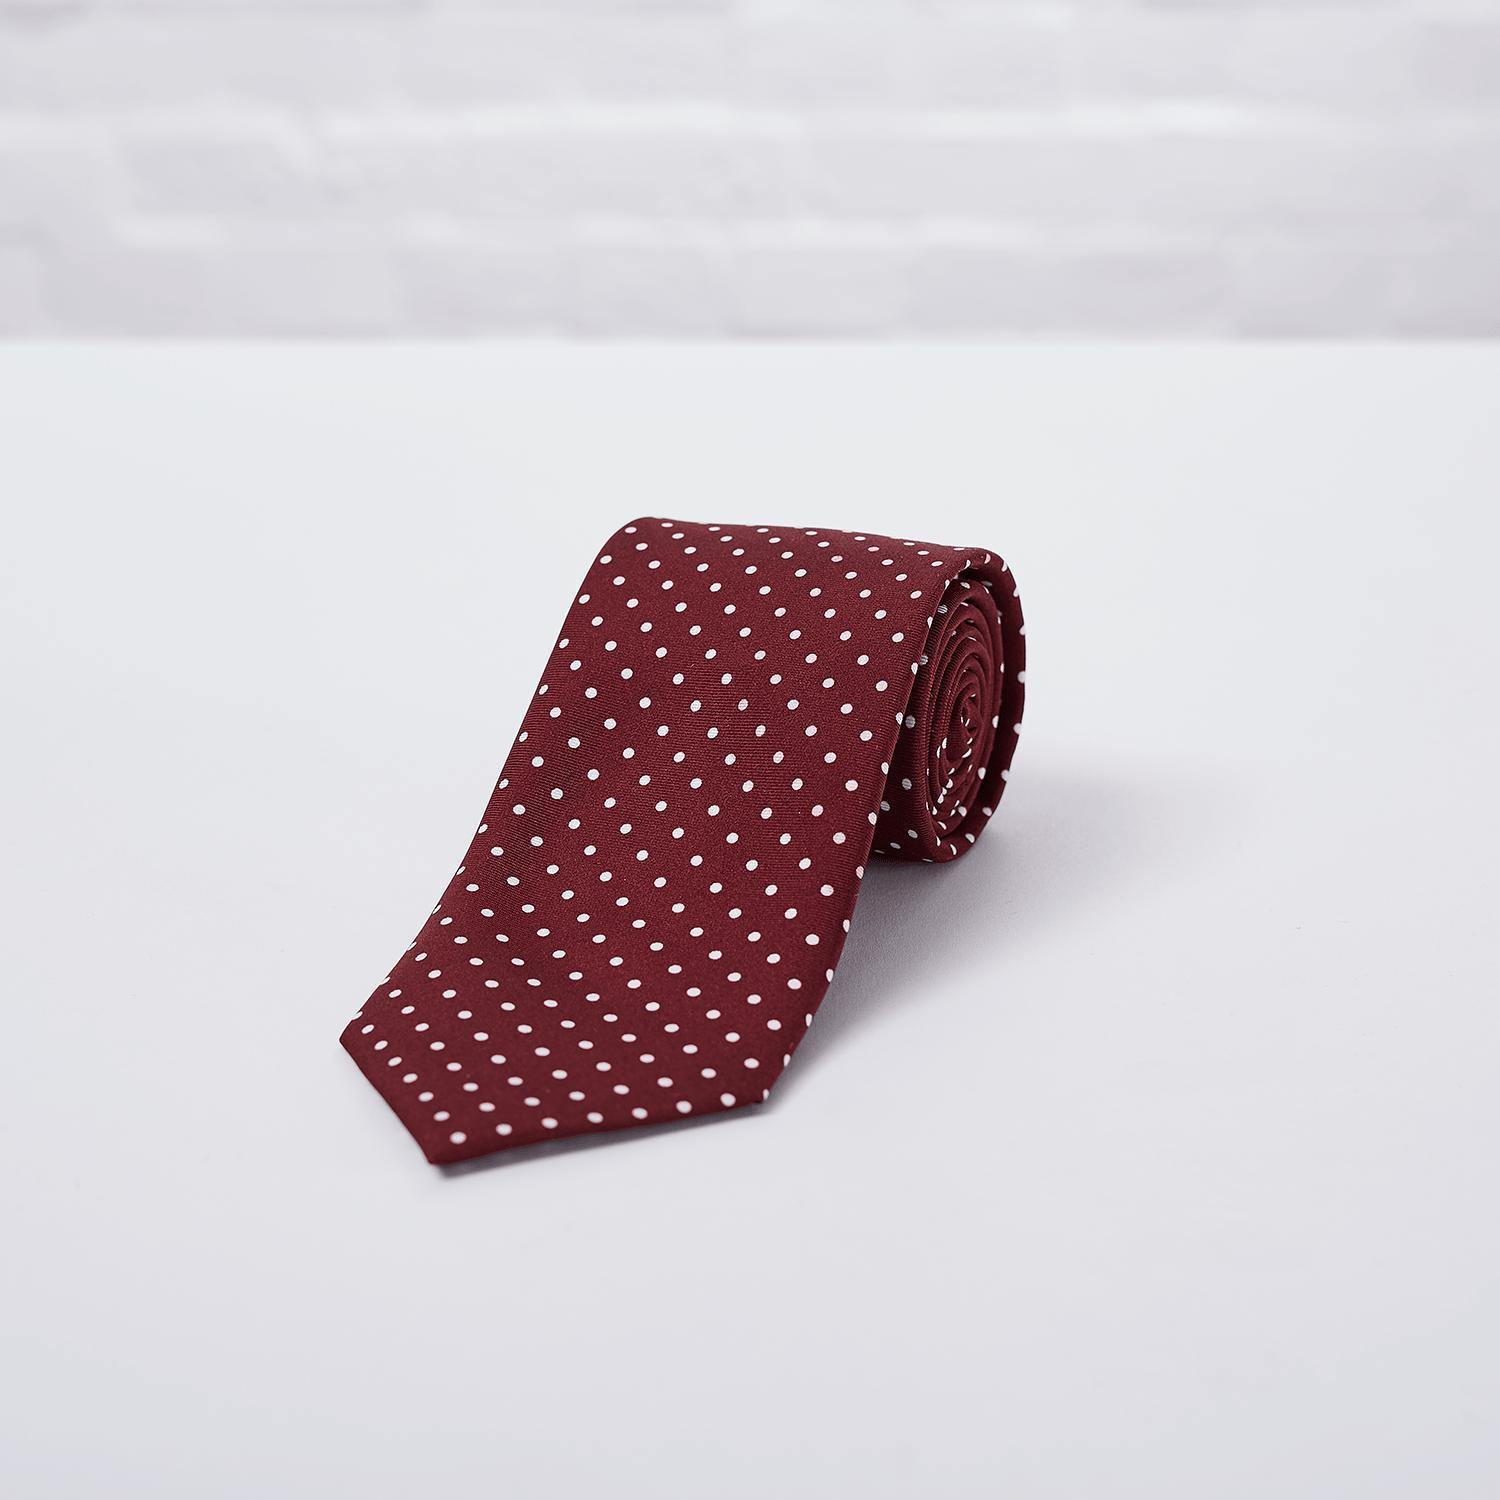 Burgundy Small Spot Printed Silk Tie Hand Finished - British Made